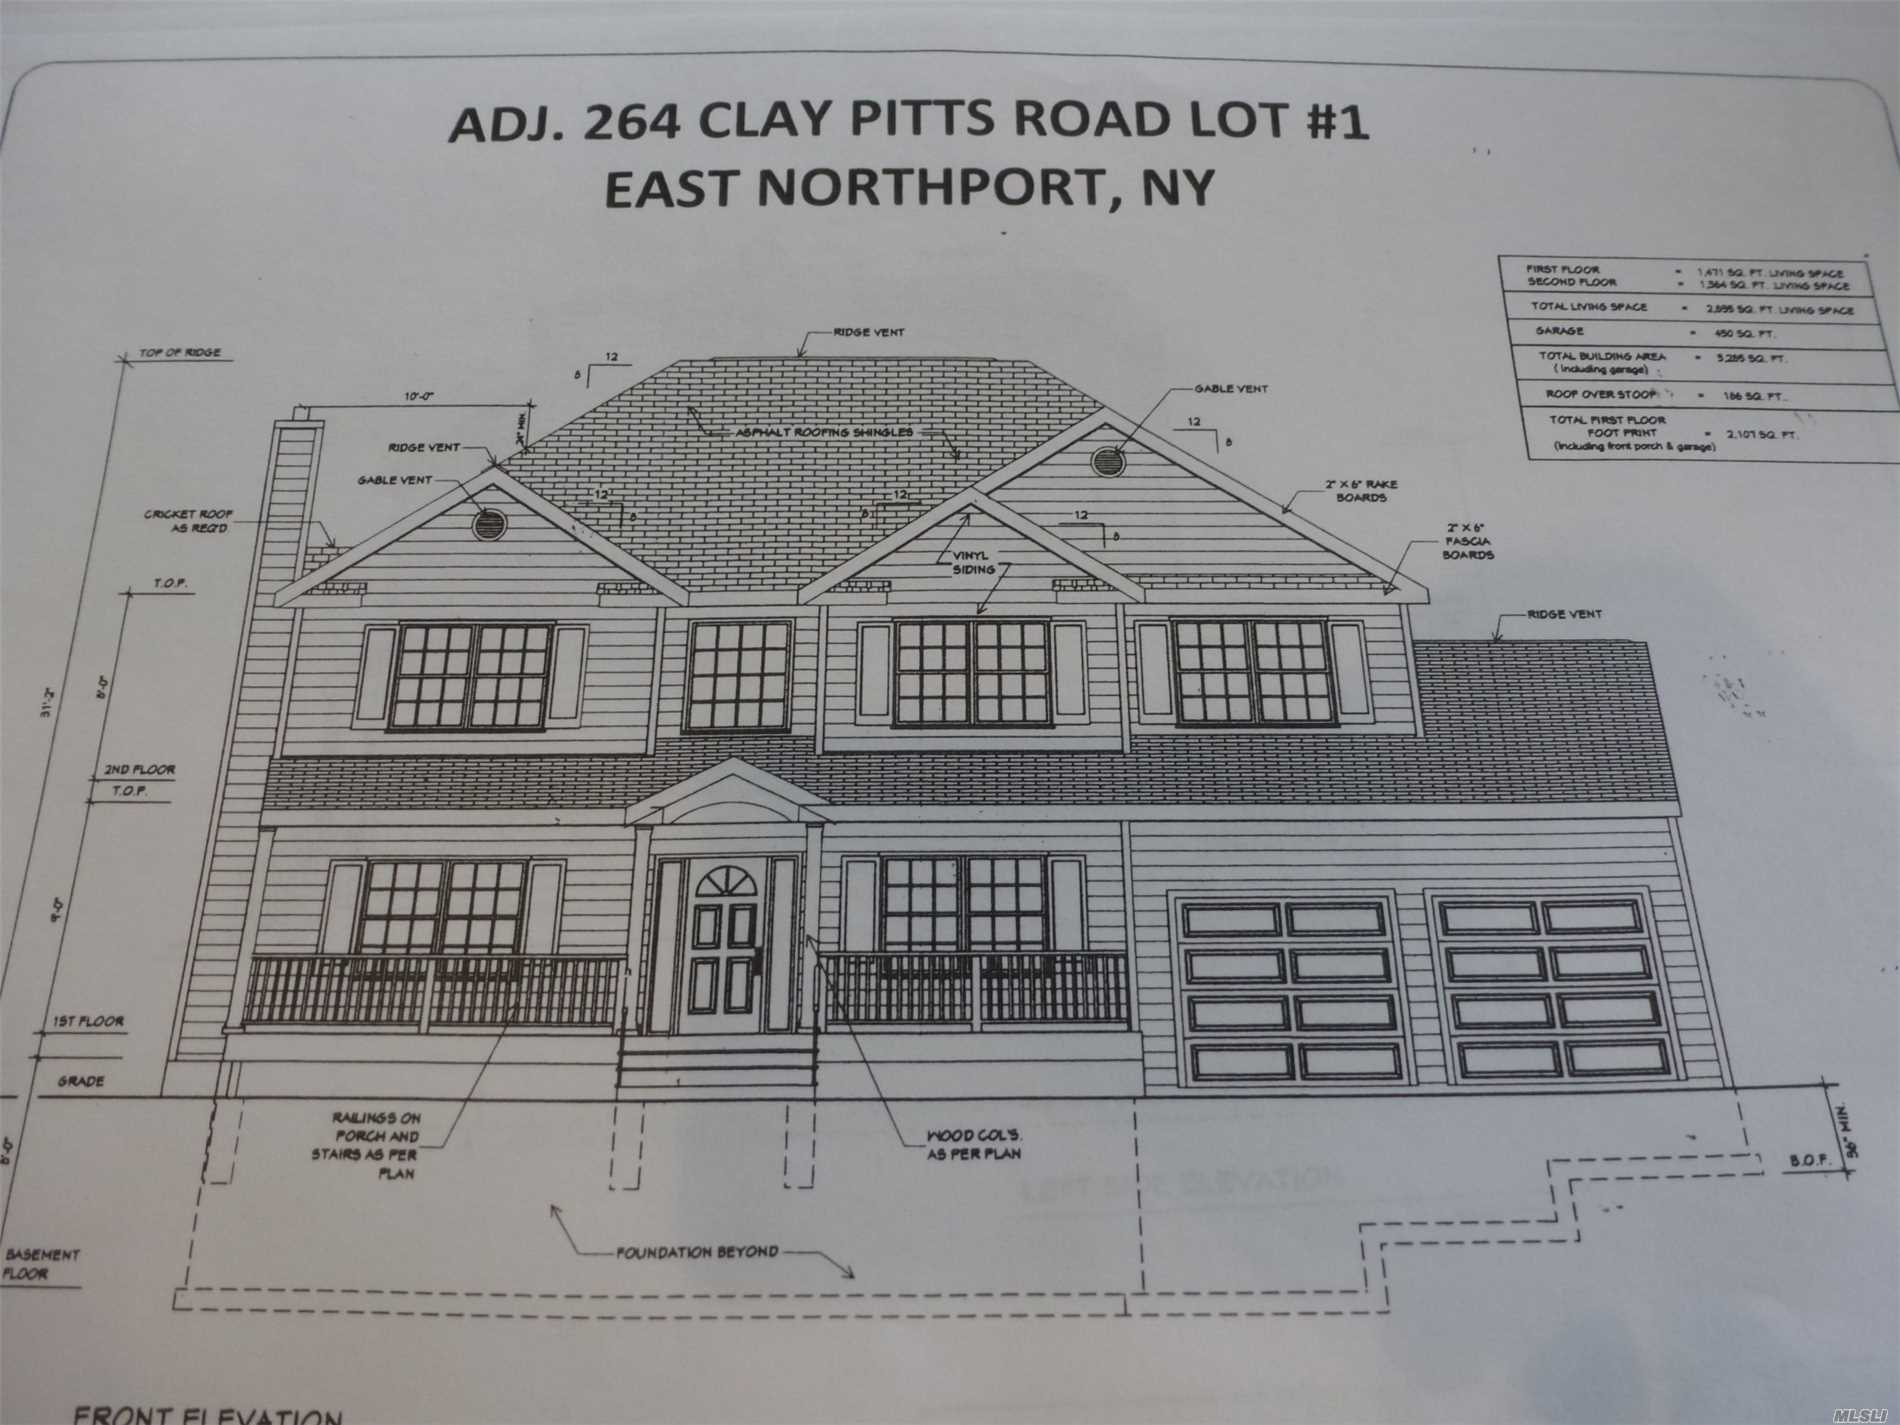 To Be Built. Will Be Ready Early Winter 2019. Custom 5 Br 3 Bath Home On .91 Acre. Crown Molding 1st Floor And Master Br. Custom Cabinetry And Granite Baths And Kitchen. Plenty Of Time For You To Make This Your Own/Customize With Your Desired Wish List! Set Back 275' From Clay Pitts. This Property Runs Alongside The East Side Of Wm. Byrne Park. Very Private Setting. Elwood Sd#1 Ge Appliance Package Hydronic Heat With Separate Boiler And Hw Heater